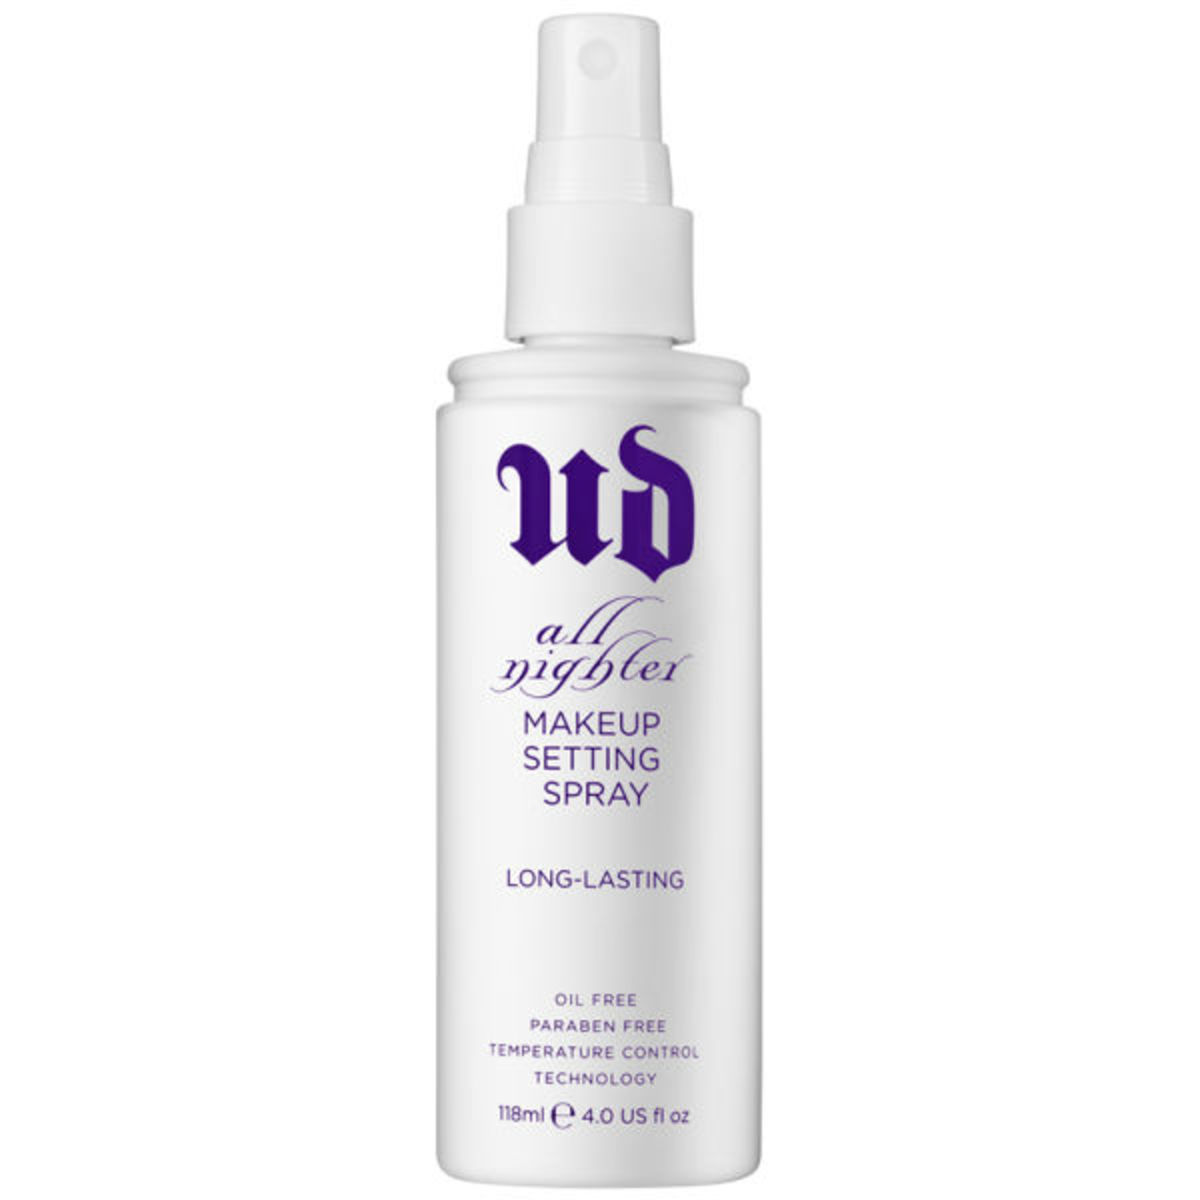 Urban Decay All Nighter Long-Lasting Makeup Setting Spray, $30, available at Sephora.com.